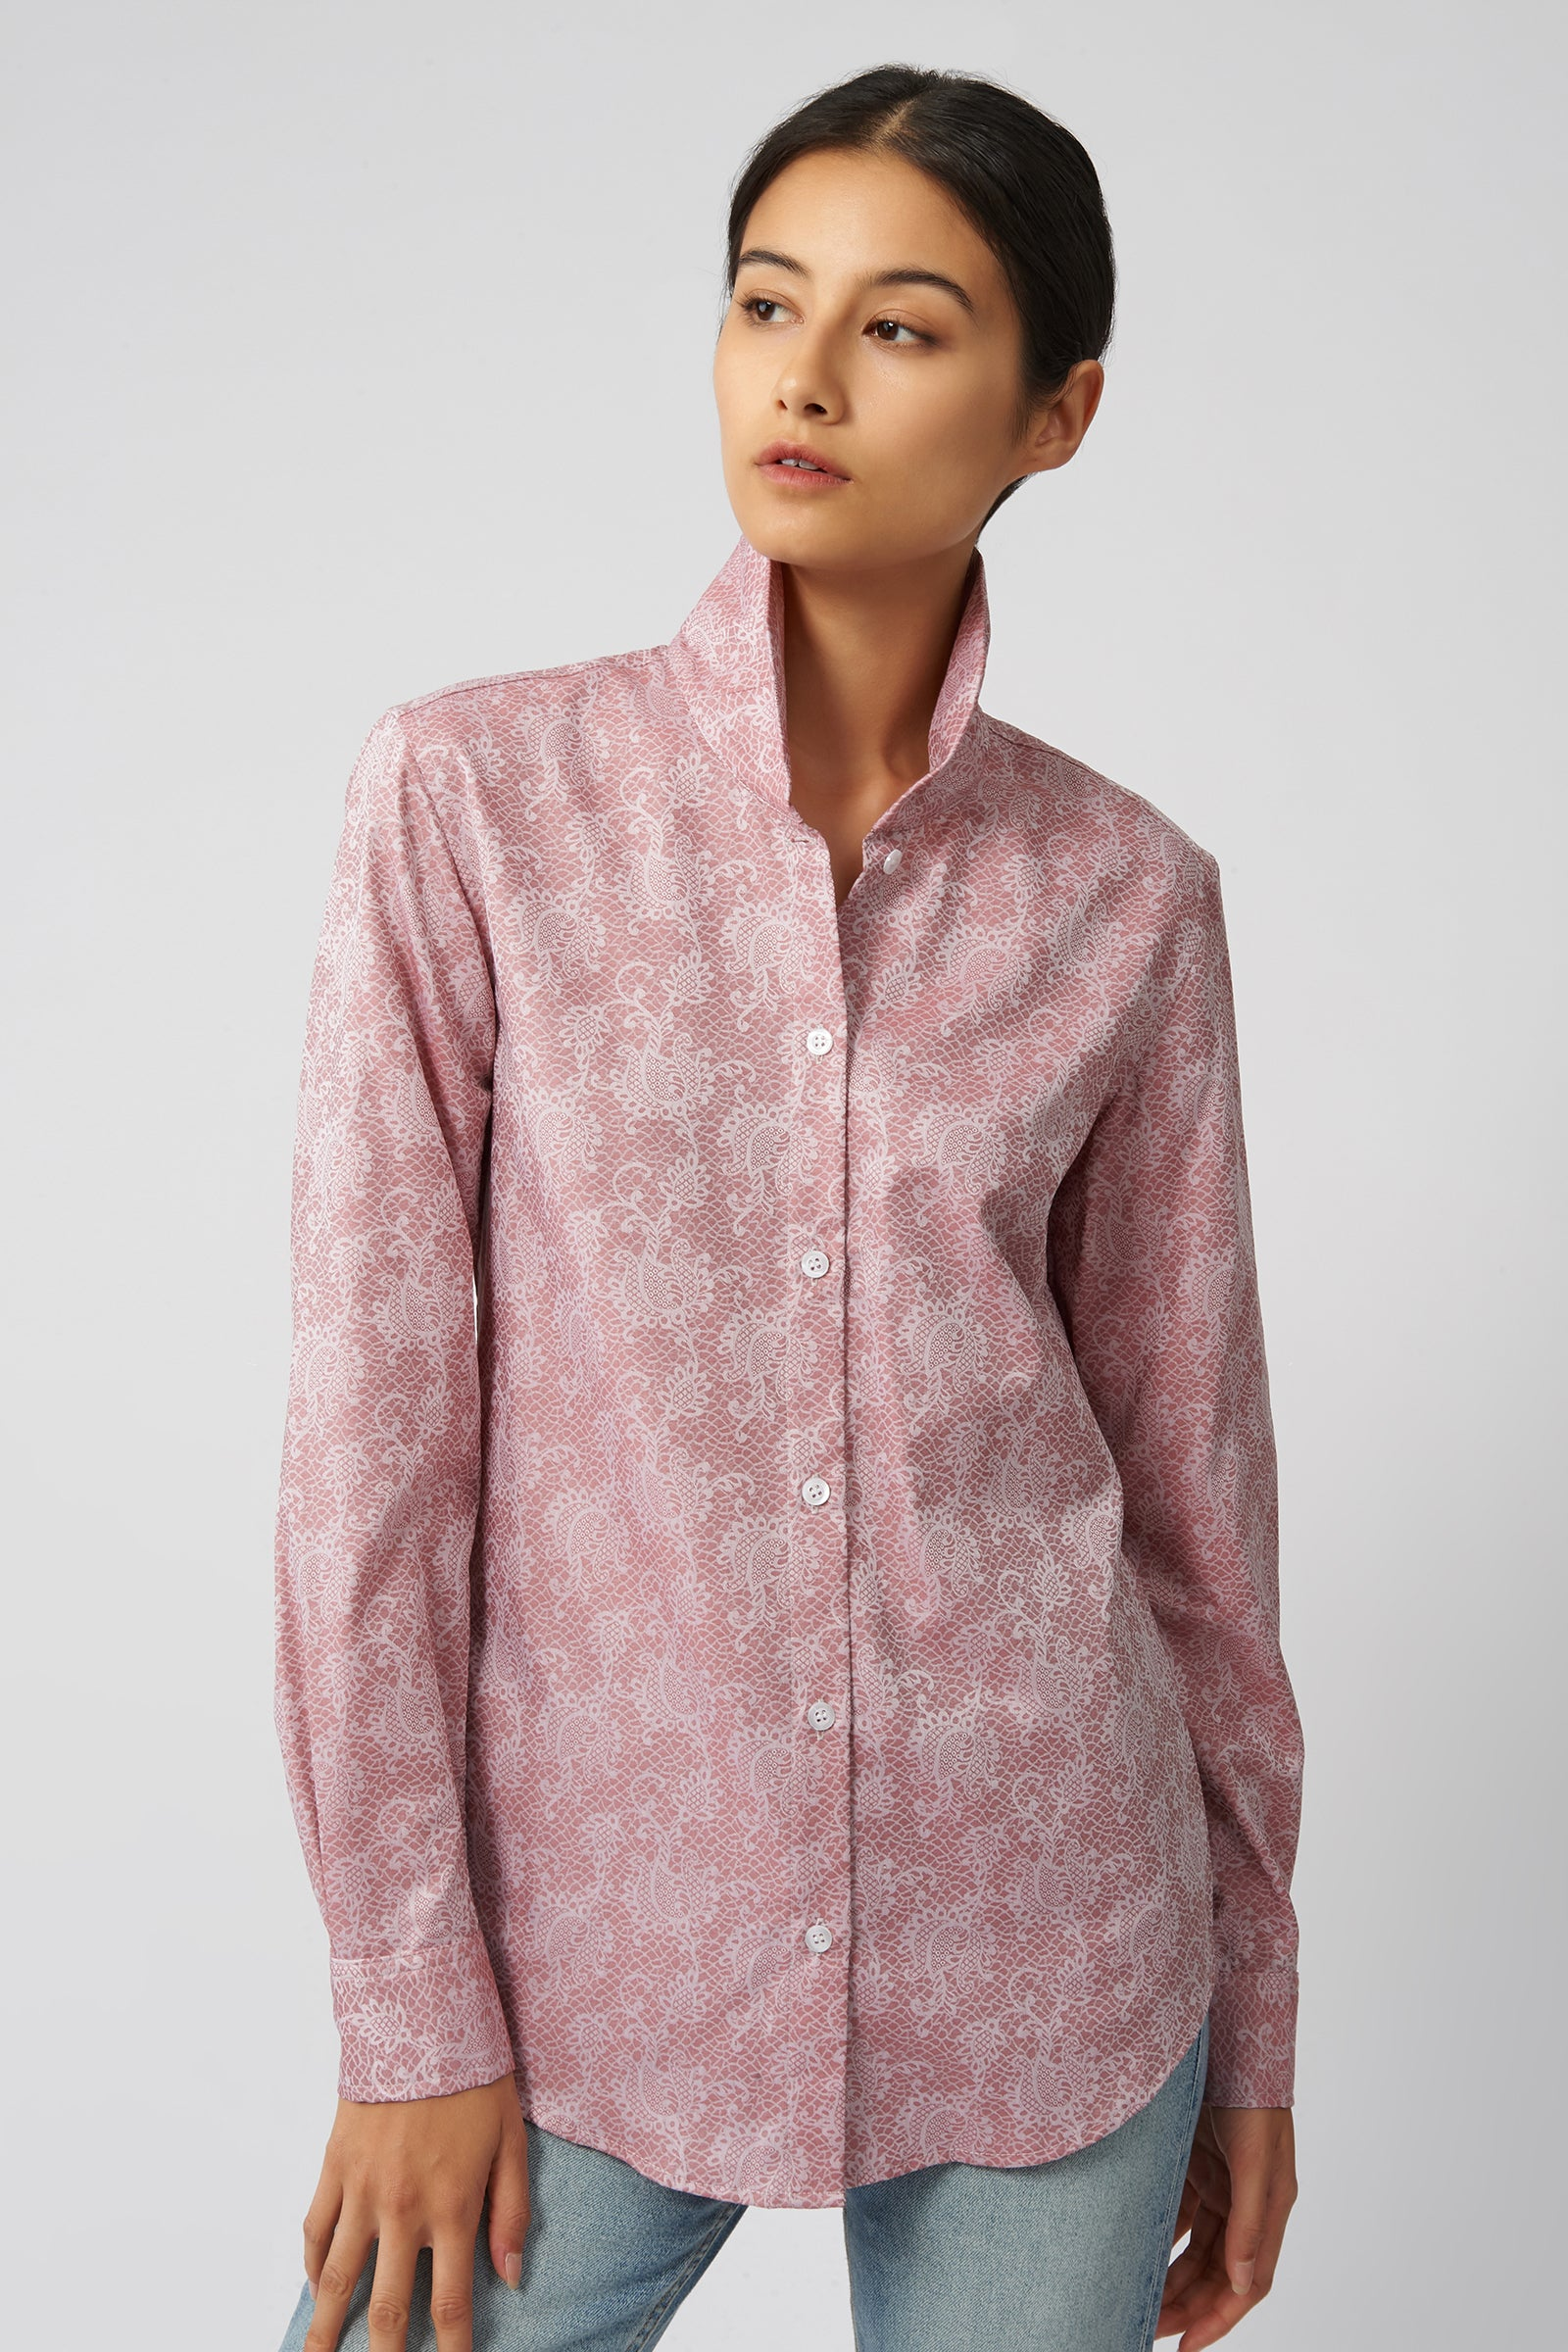 Kal Rieman Ginna Tailored Shirt in Rose Floral Jacquard on Model Front View